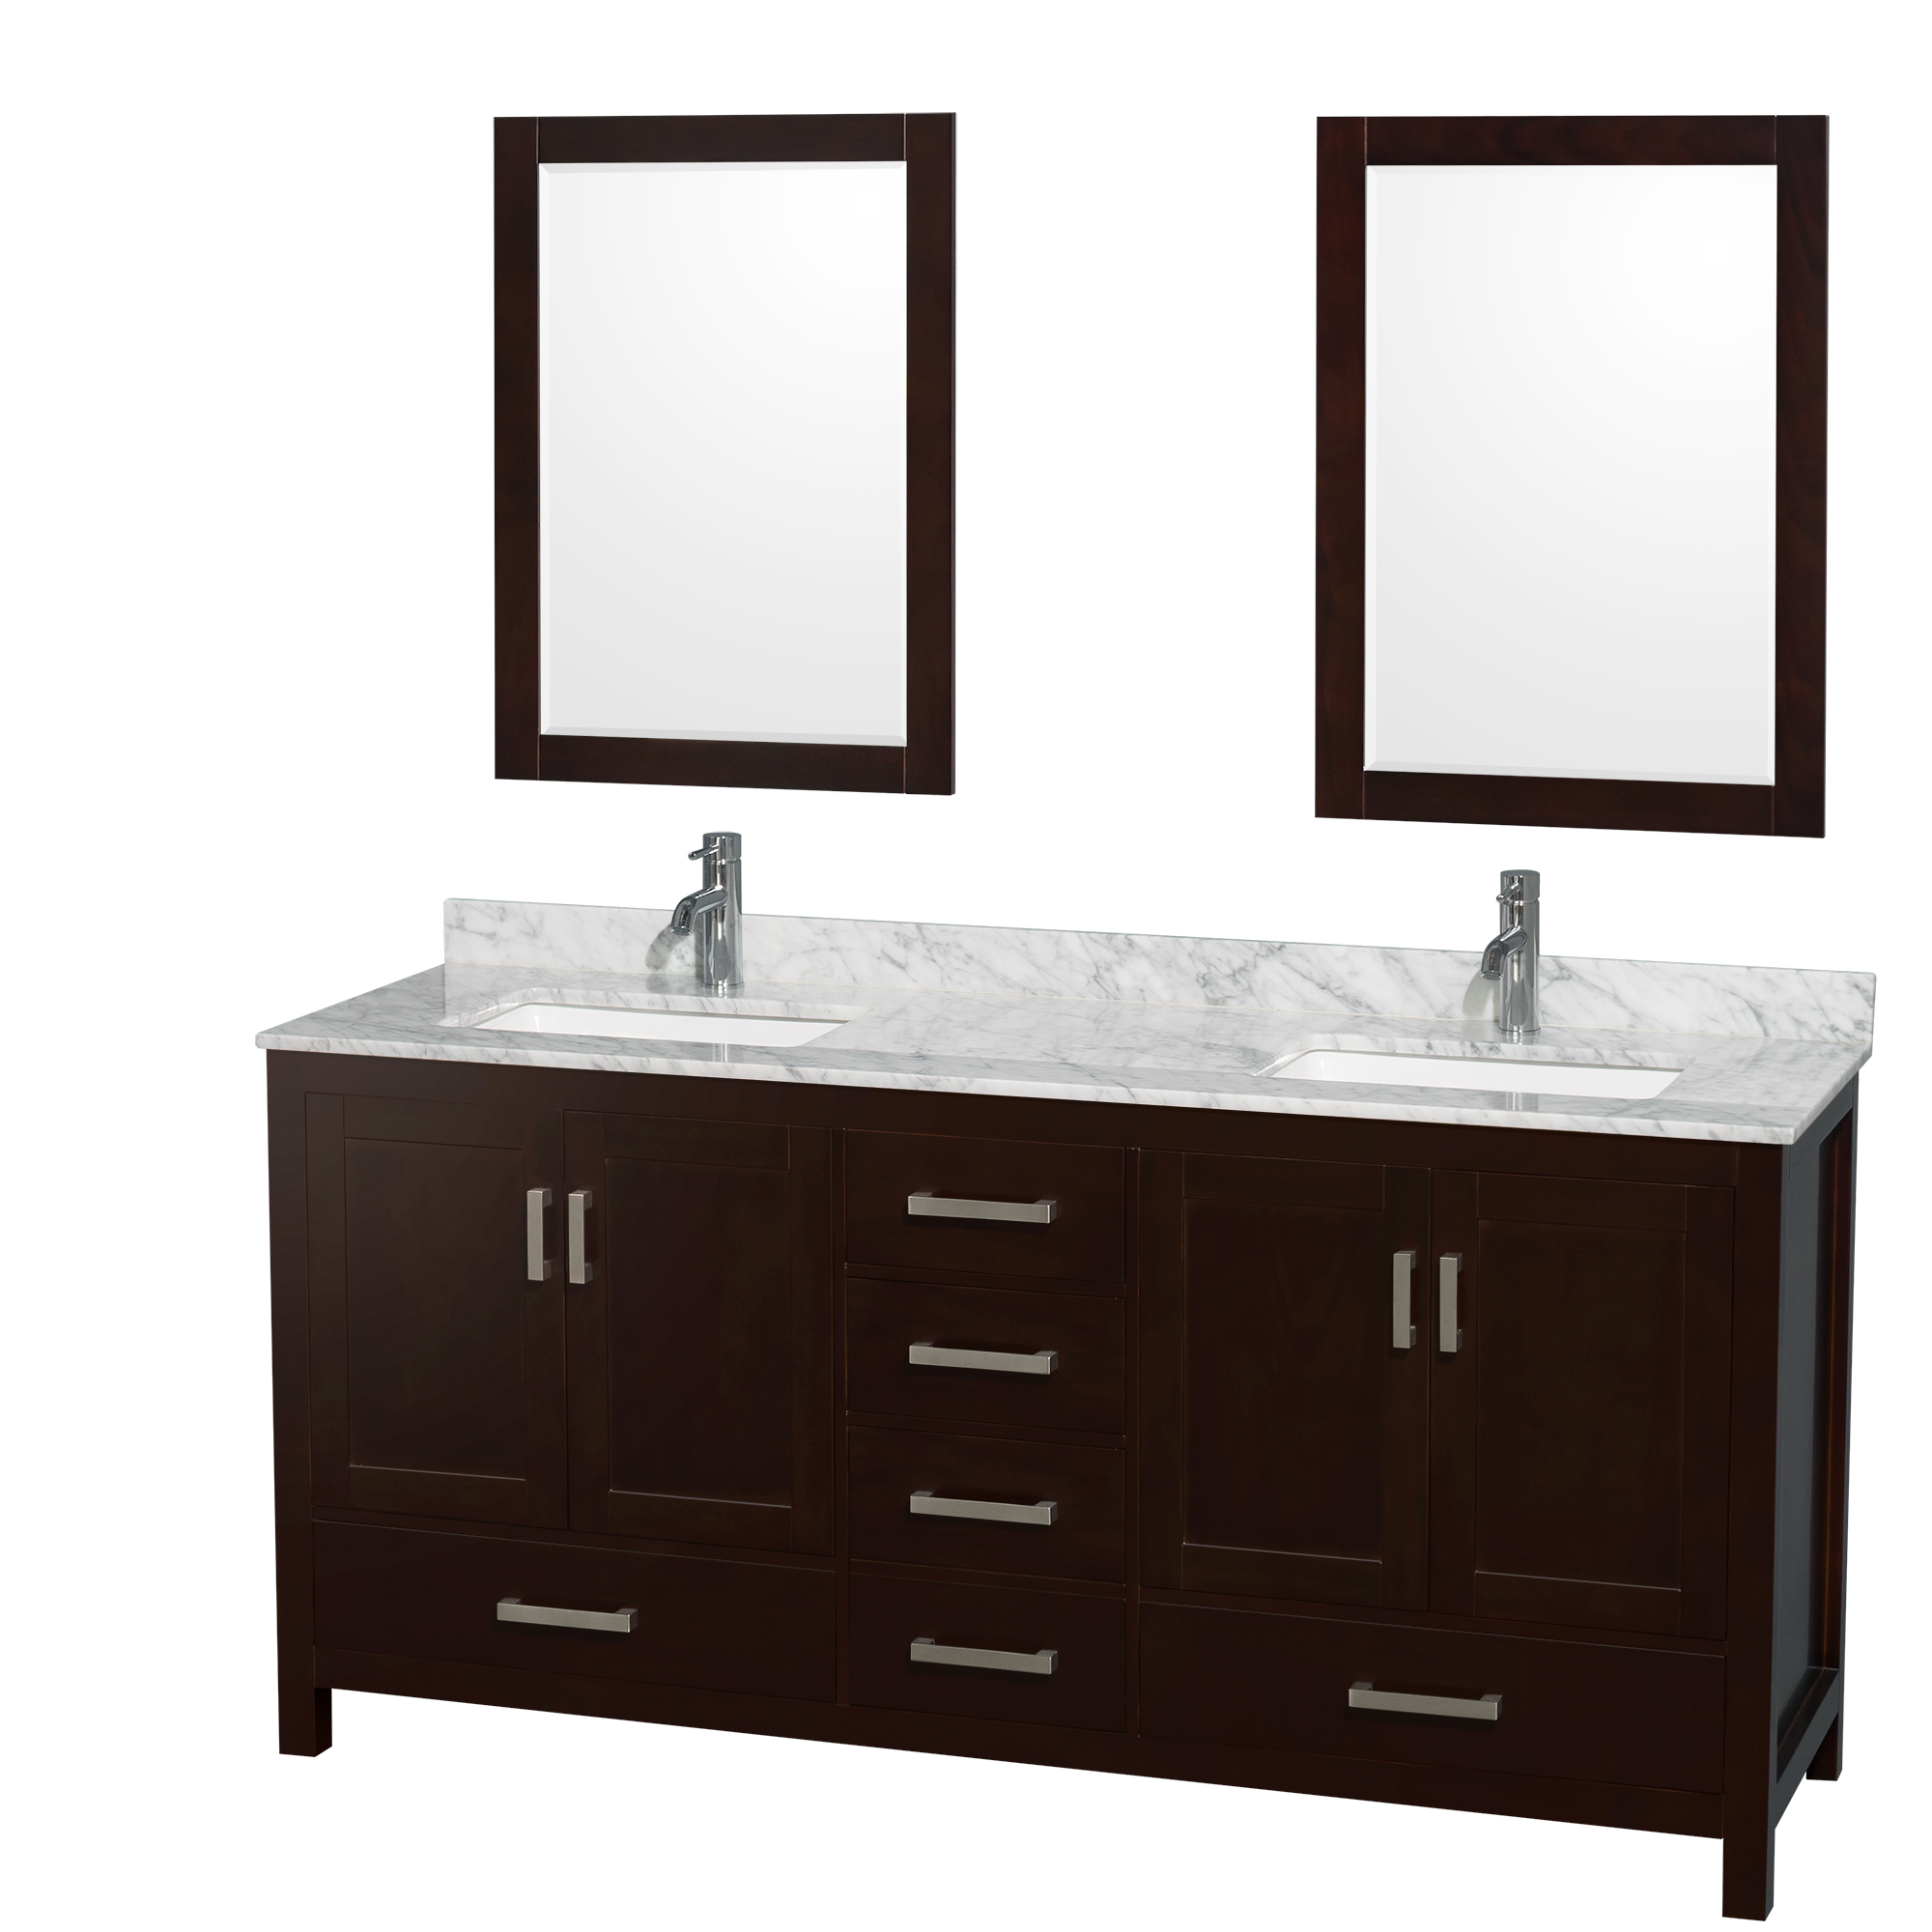 Sheffield 72 Double Bathroom Vanity Espresso Beautiful Bathroom Furniture For Every Home Wyndham Collection